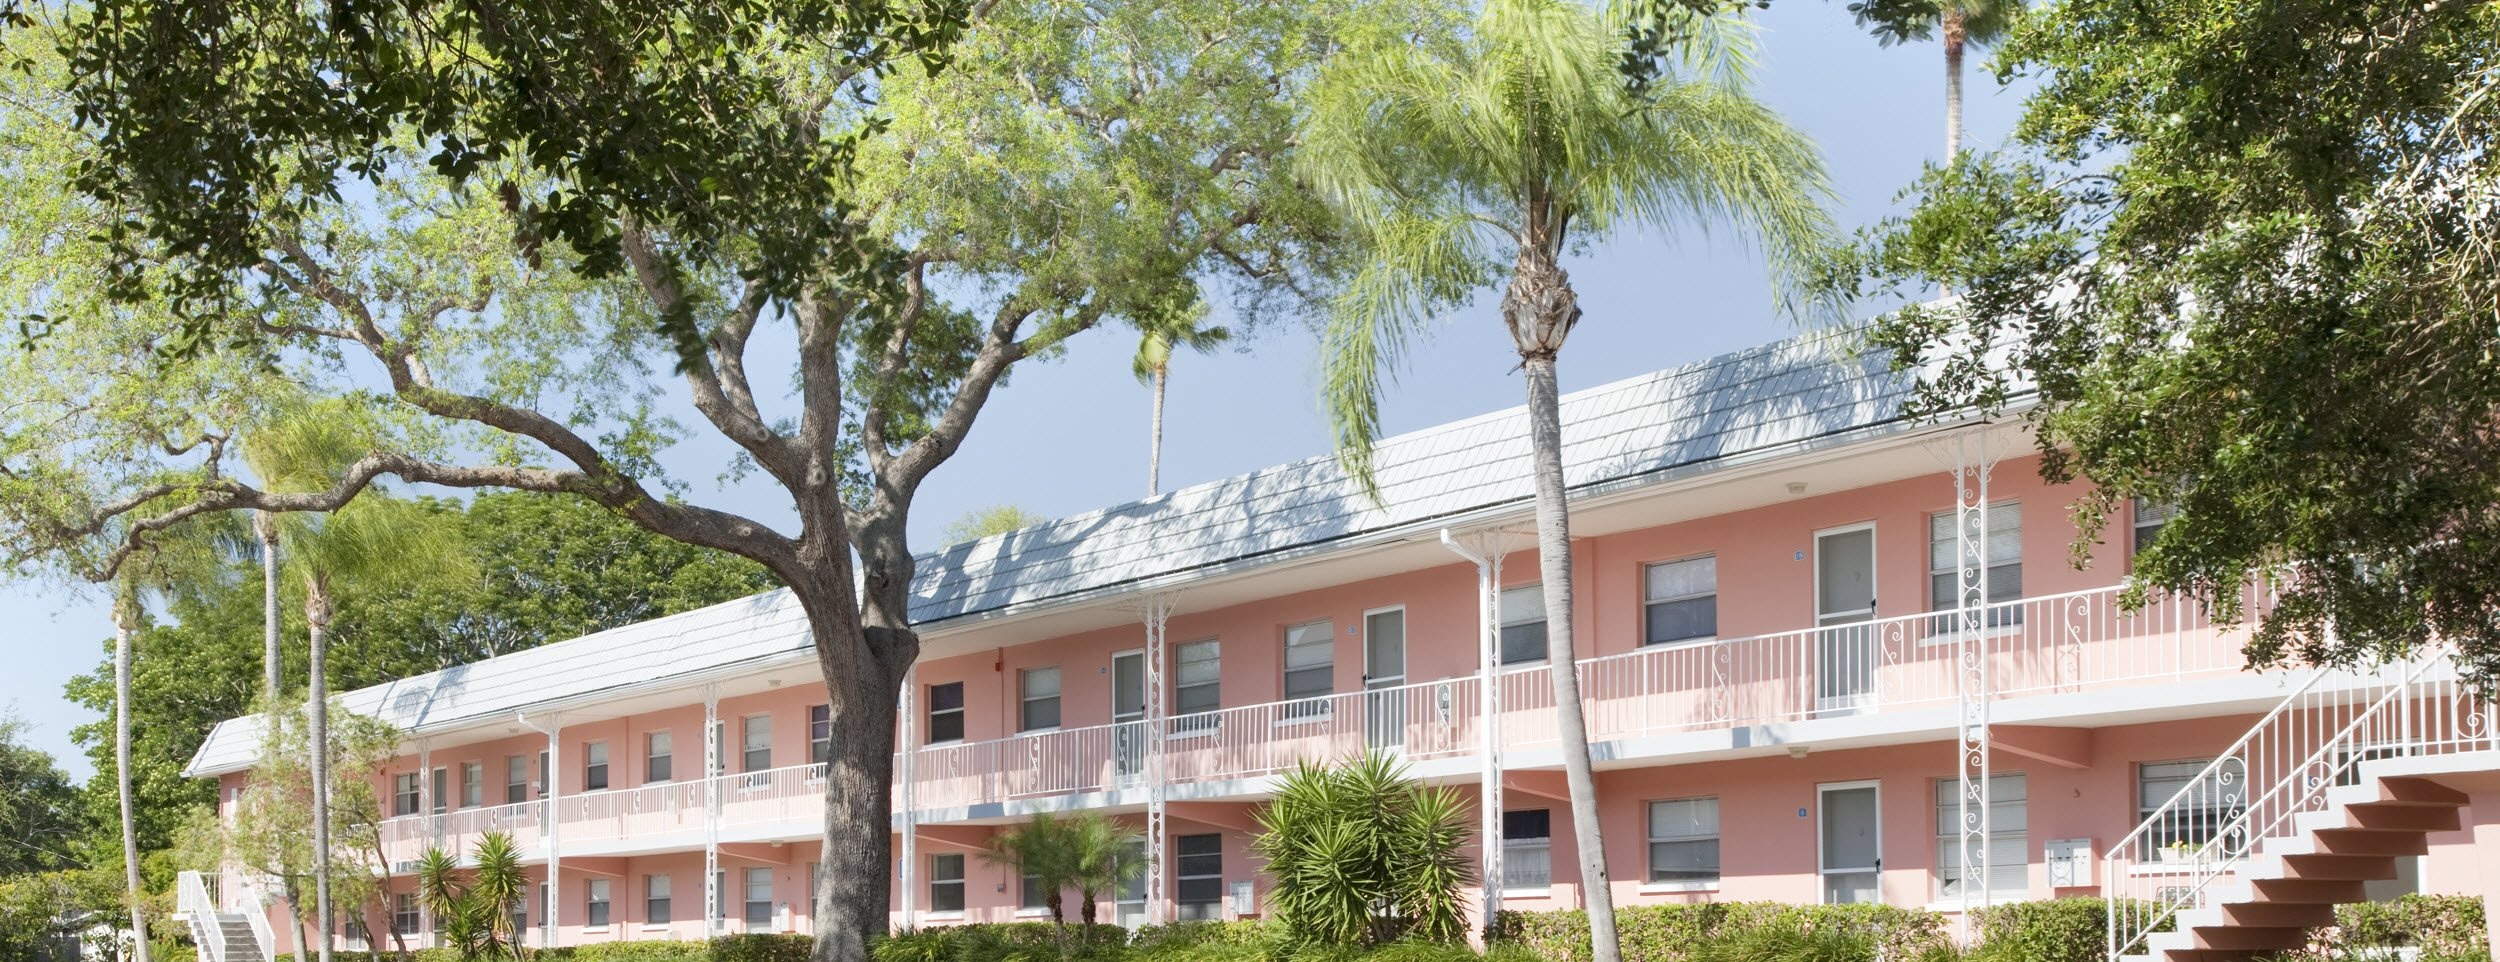 Imperial Gardens Apartments In Clearwater Fl